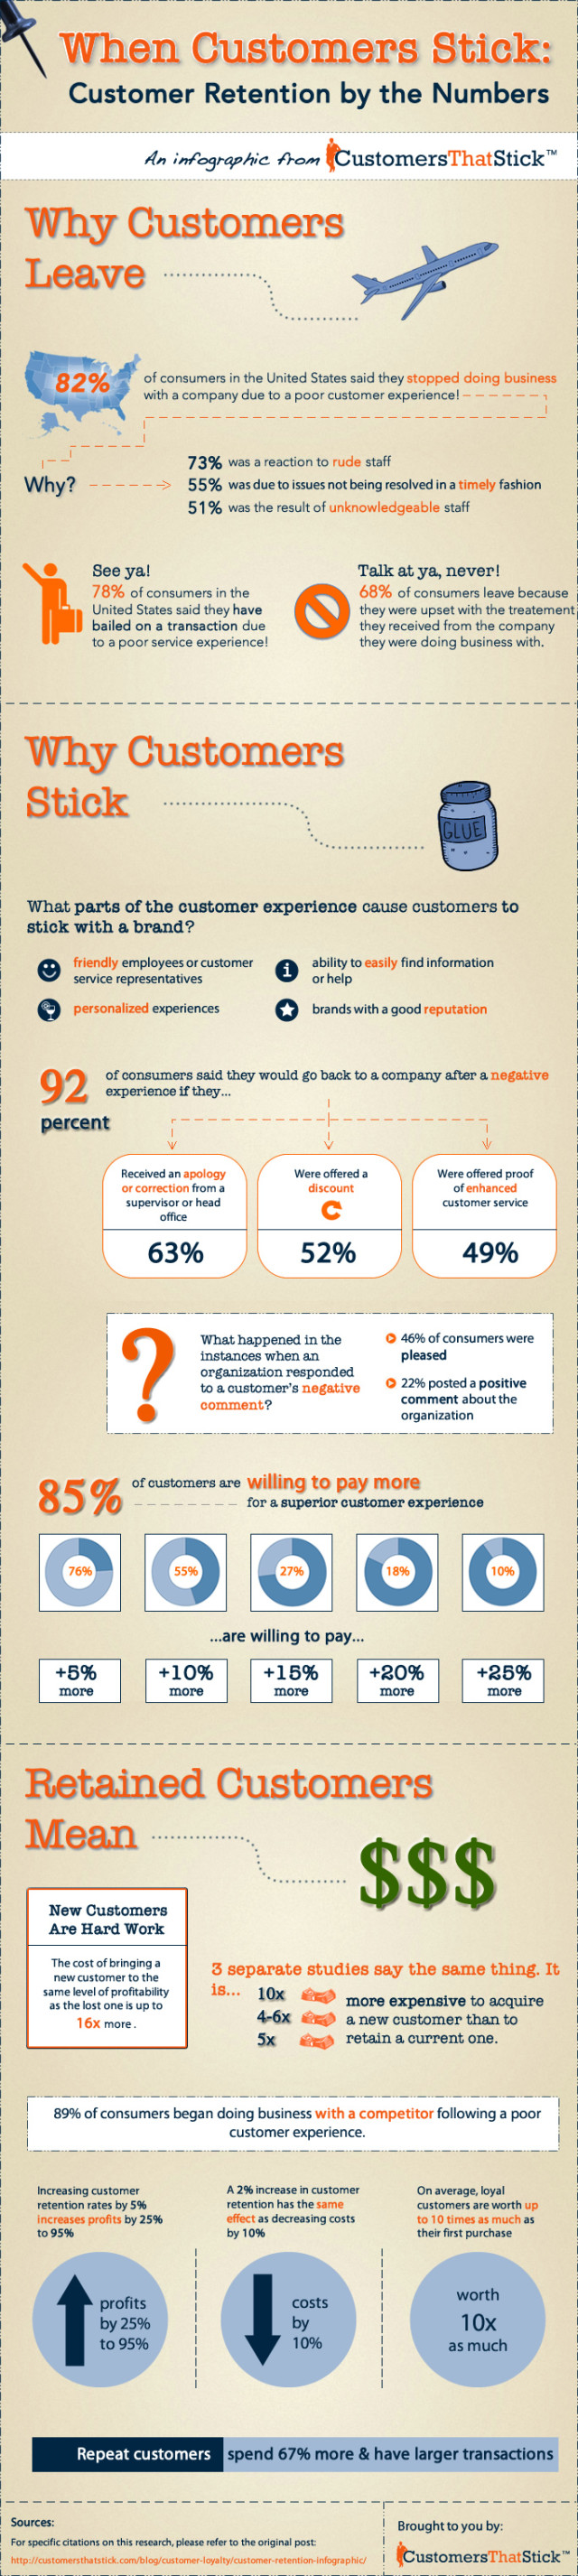 via  marketingtechblog.com